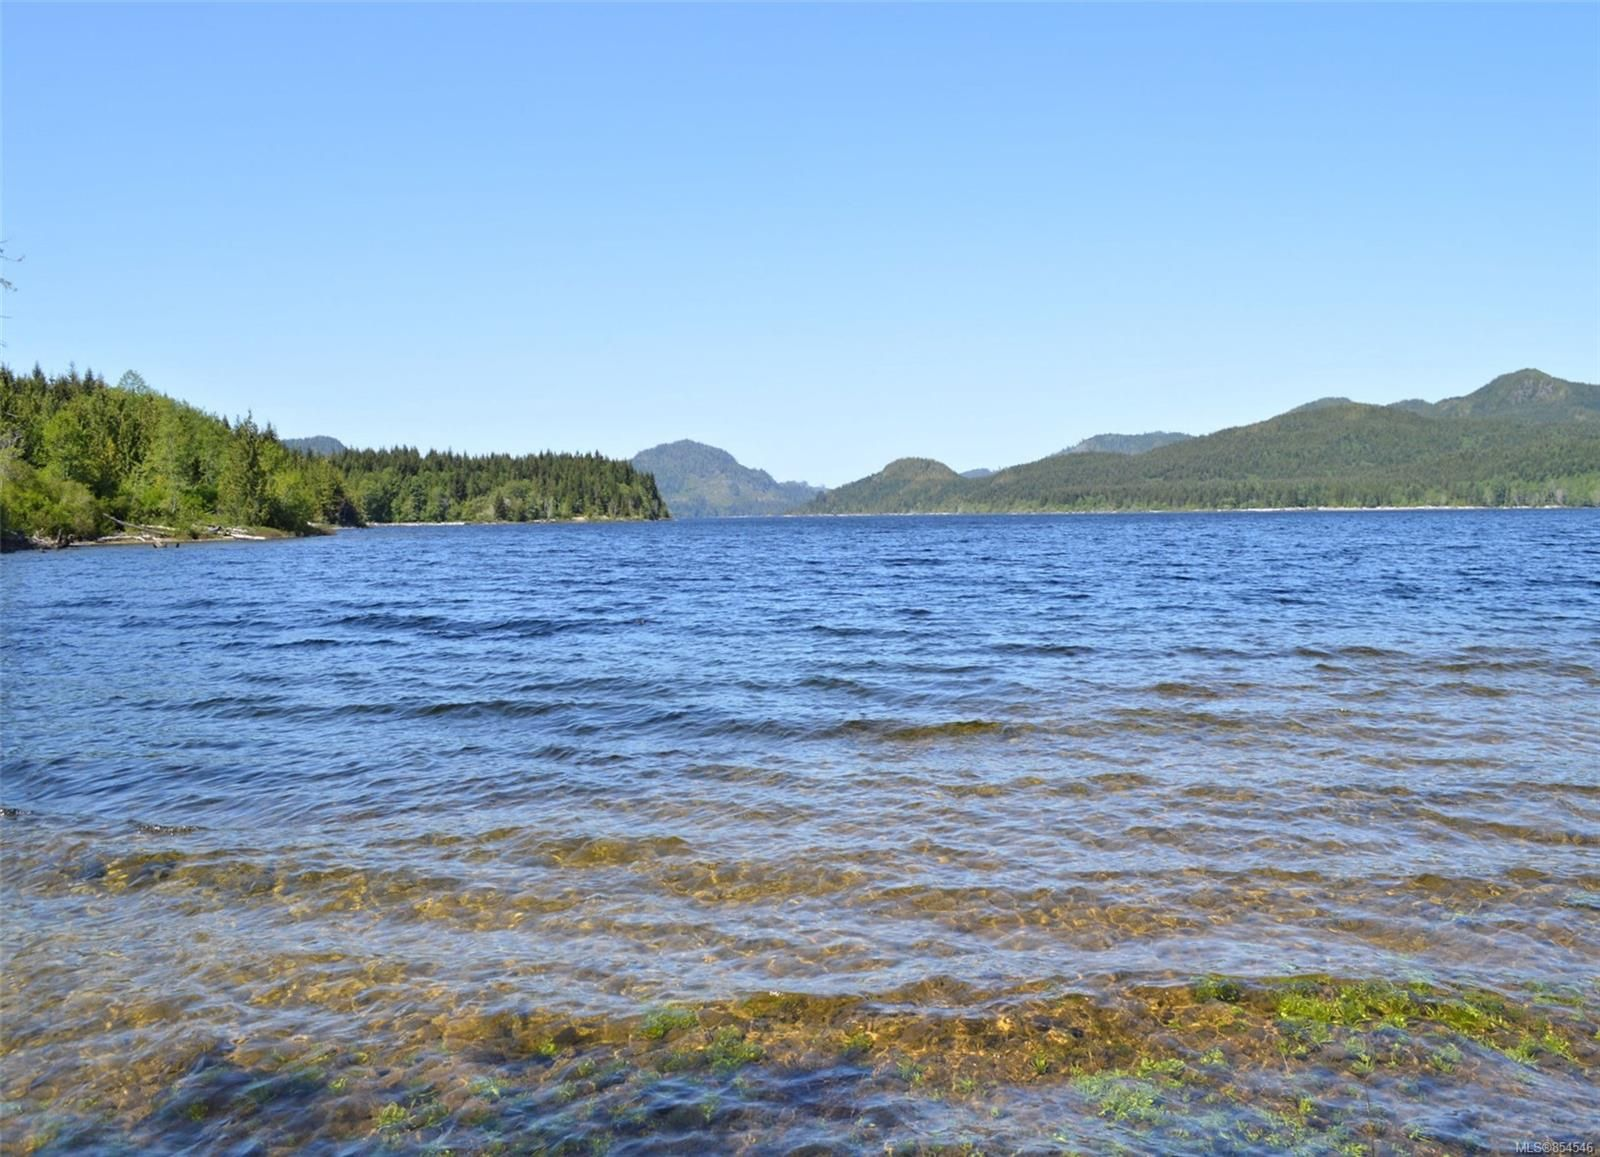 Main Photo: Lot 8 Alice Lake in : NI Port Alice Land for sale (North Island)  : MLS®# 854546